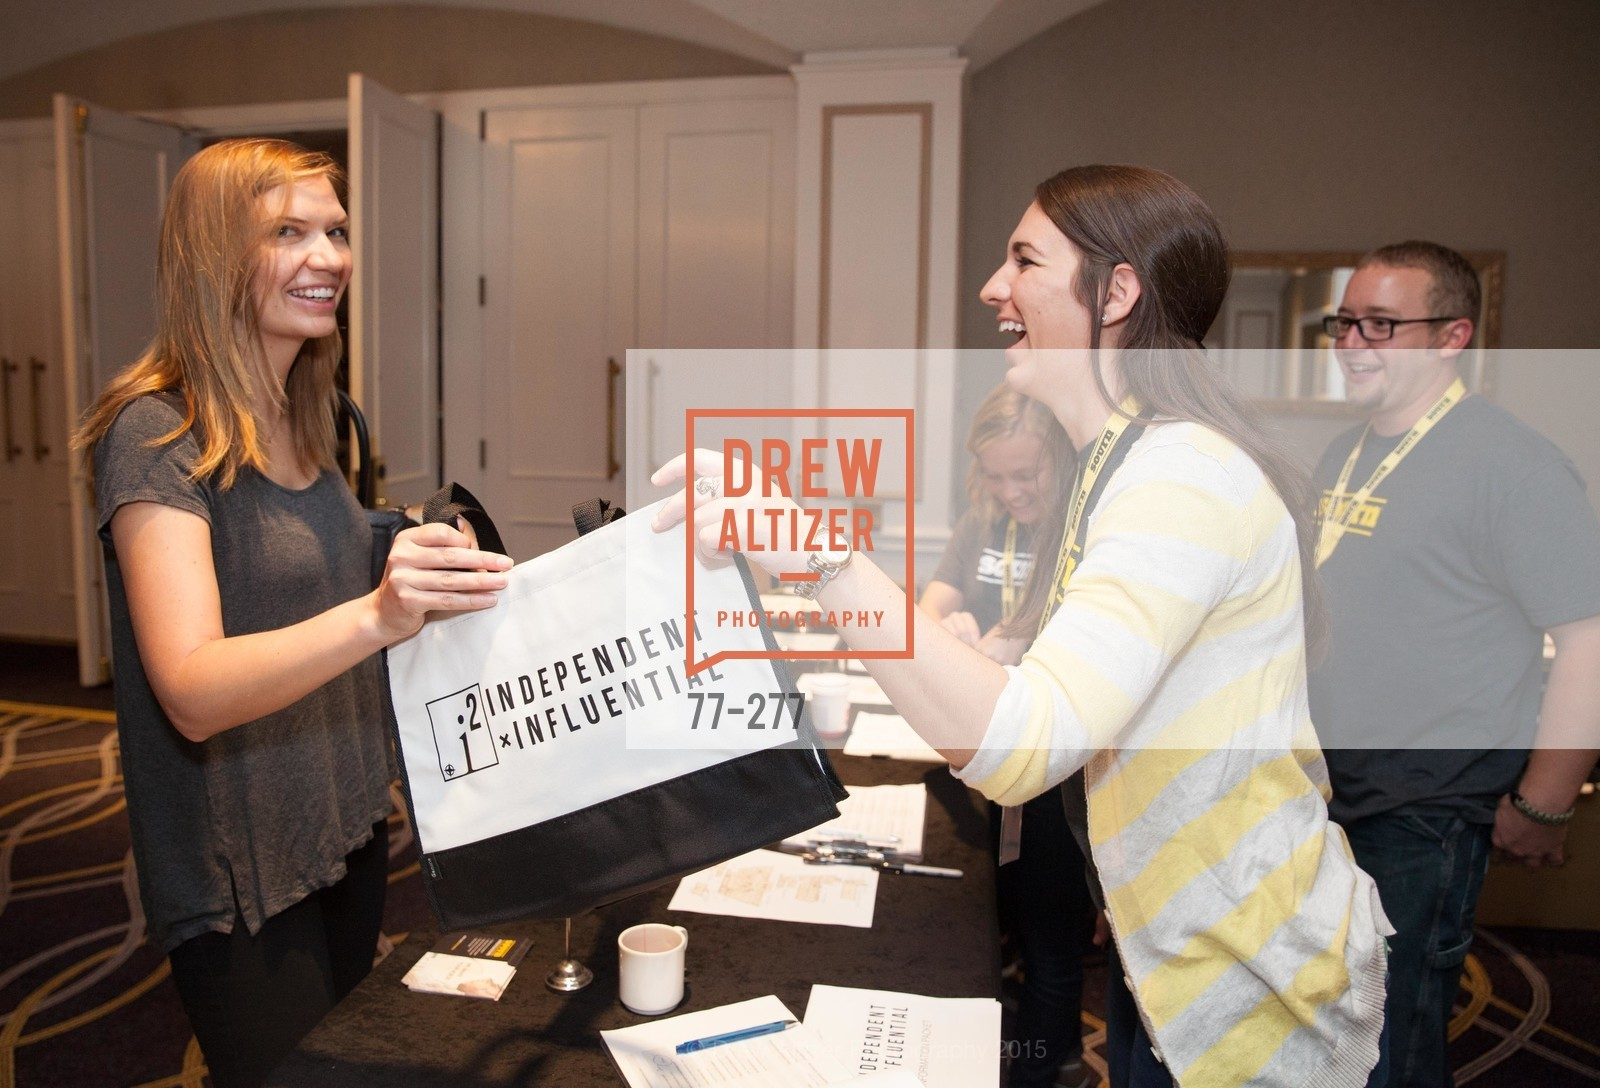 Extras, sovrn i 2 summit 2015, September 9th, 2015, Photo,Drew Altizer, Drew Altizer Photography, full-service event agency, private events, San Francisco photographer, photographer California